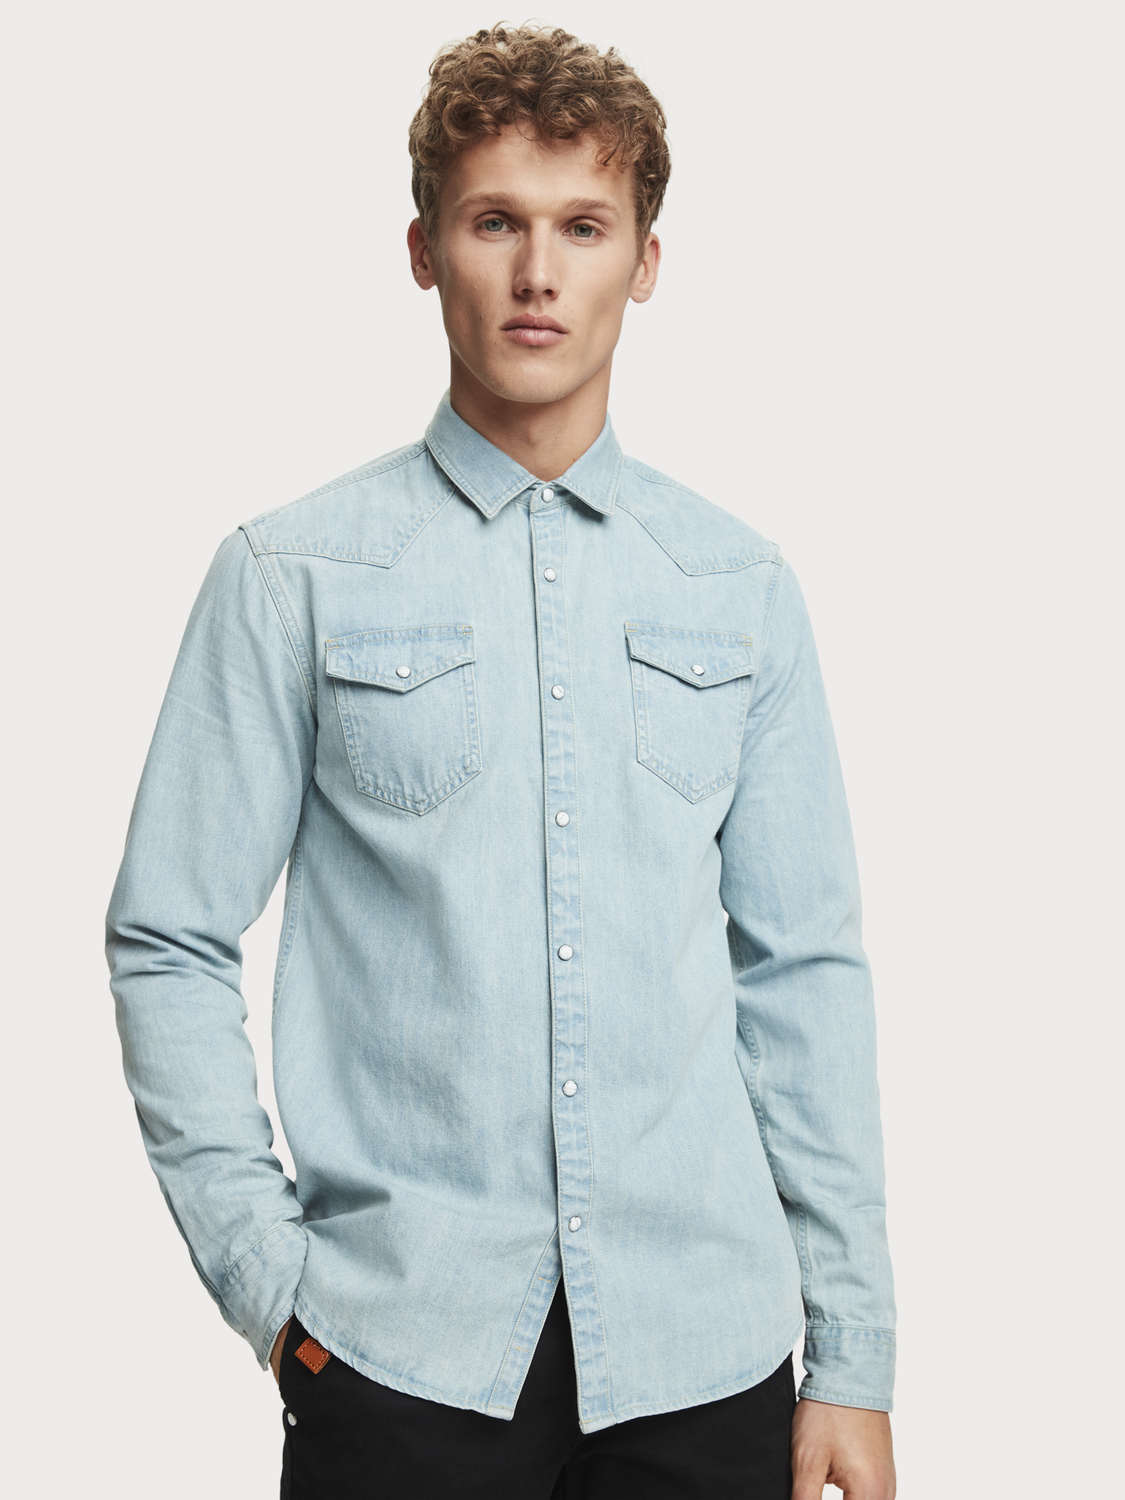 Uomo Camicia in denim | Regular fit